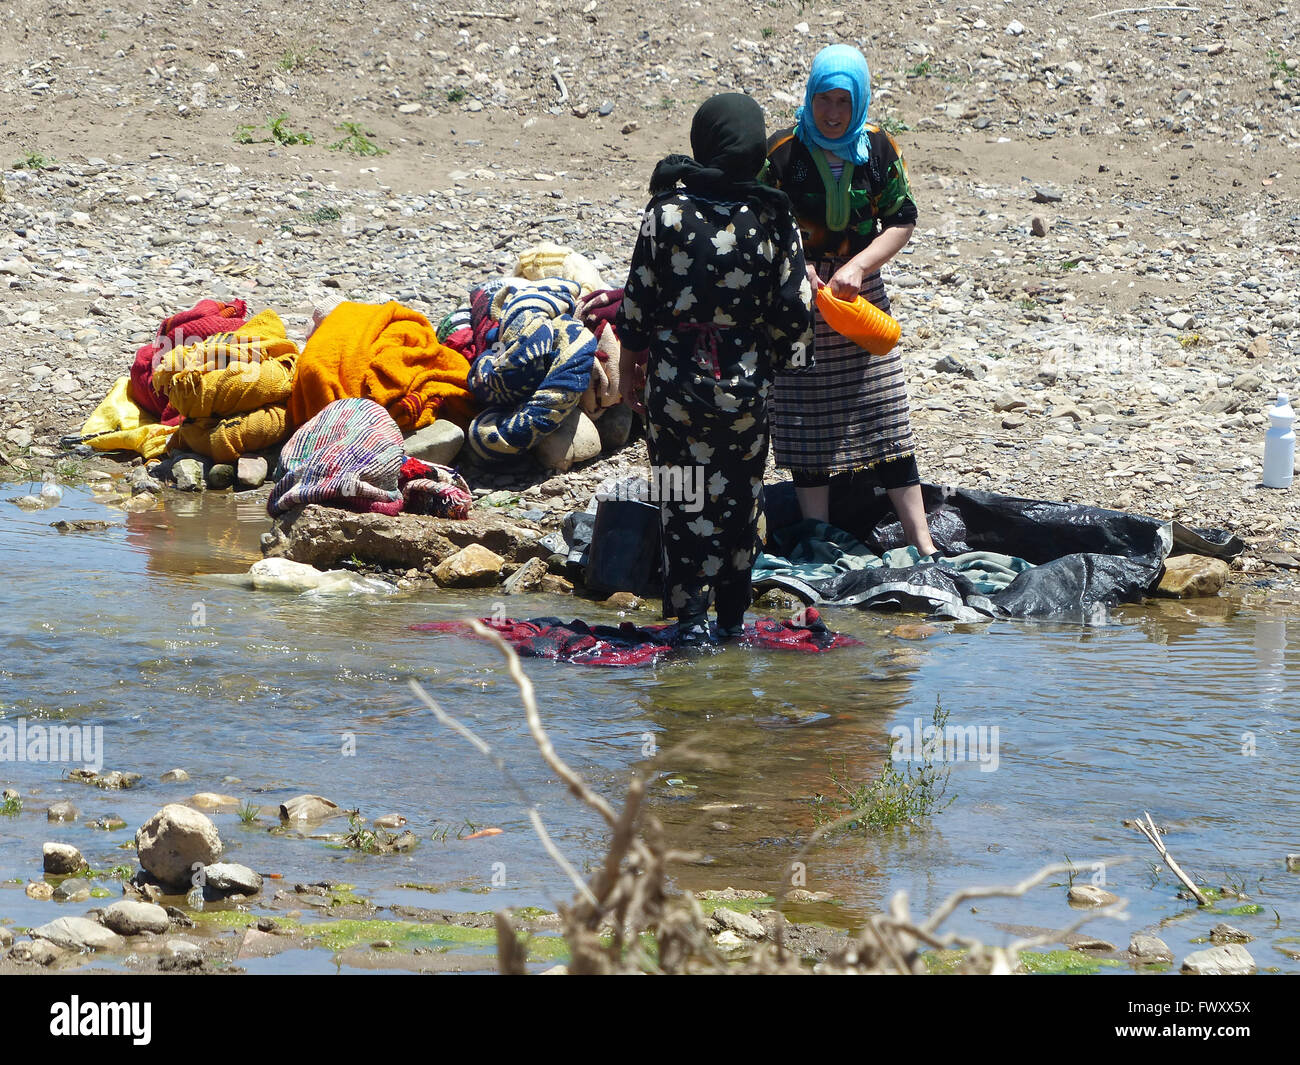 Women wash clothes in a river, Morocco - Stock Image